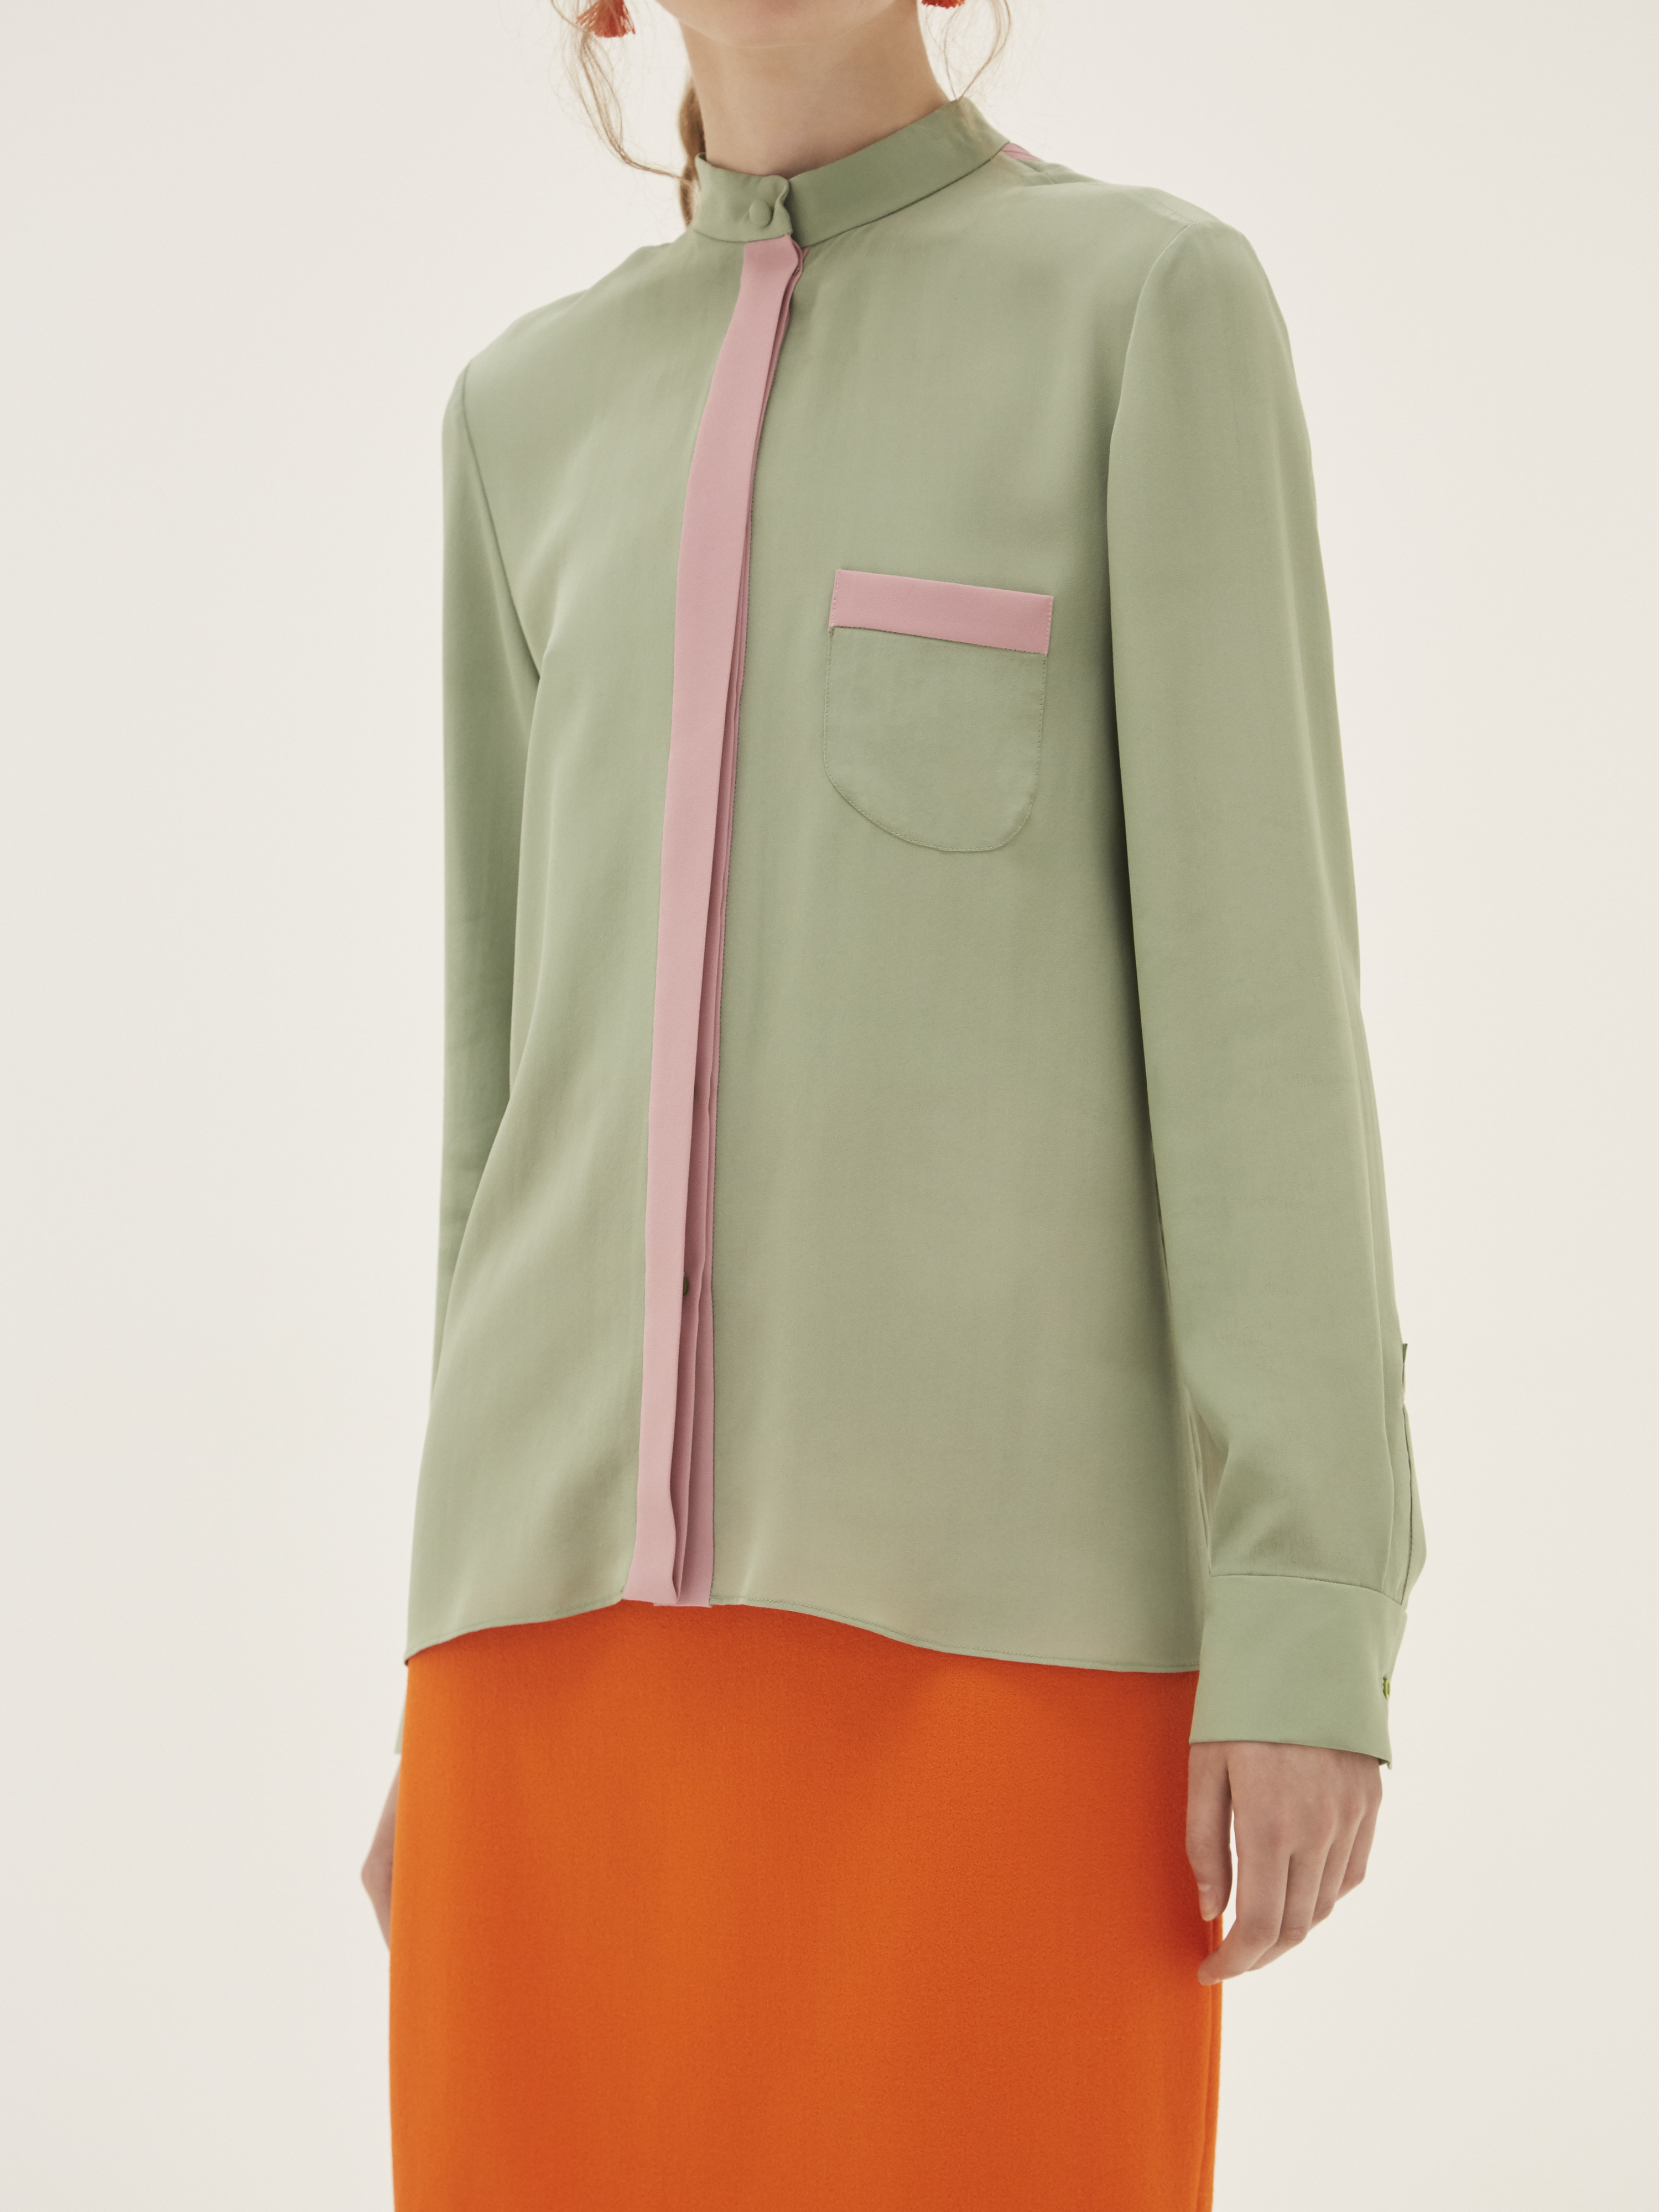 Honesty Blouse by Bozena Jankowska on curated-crowd.com